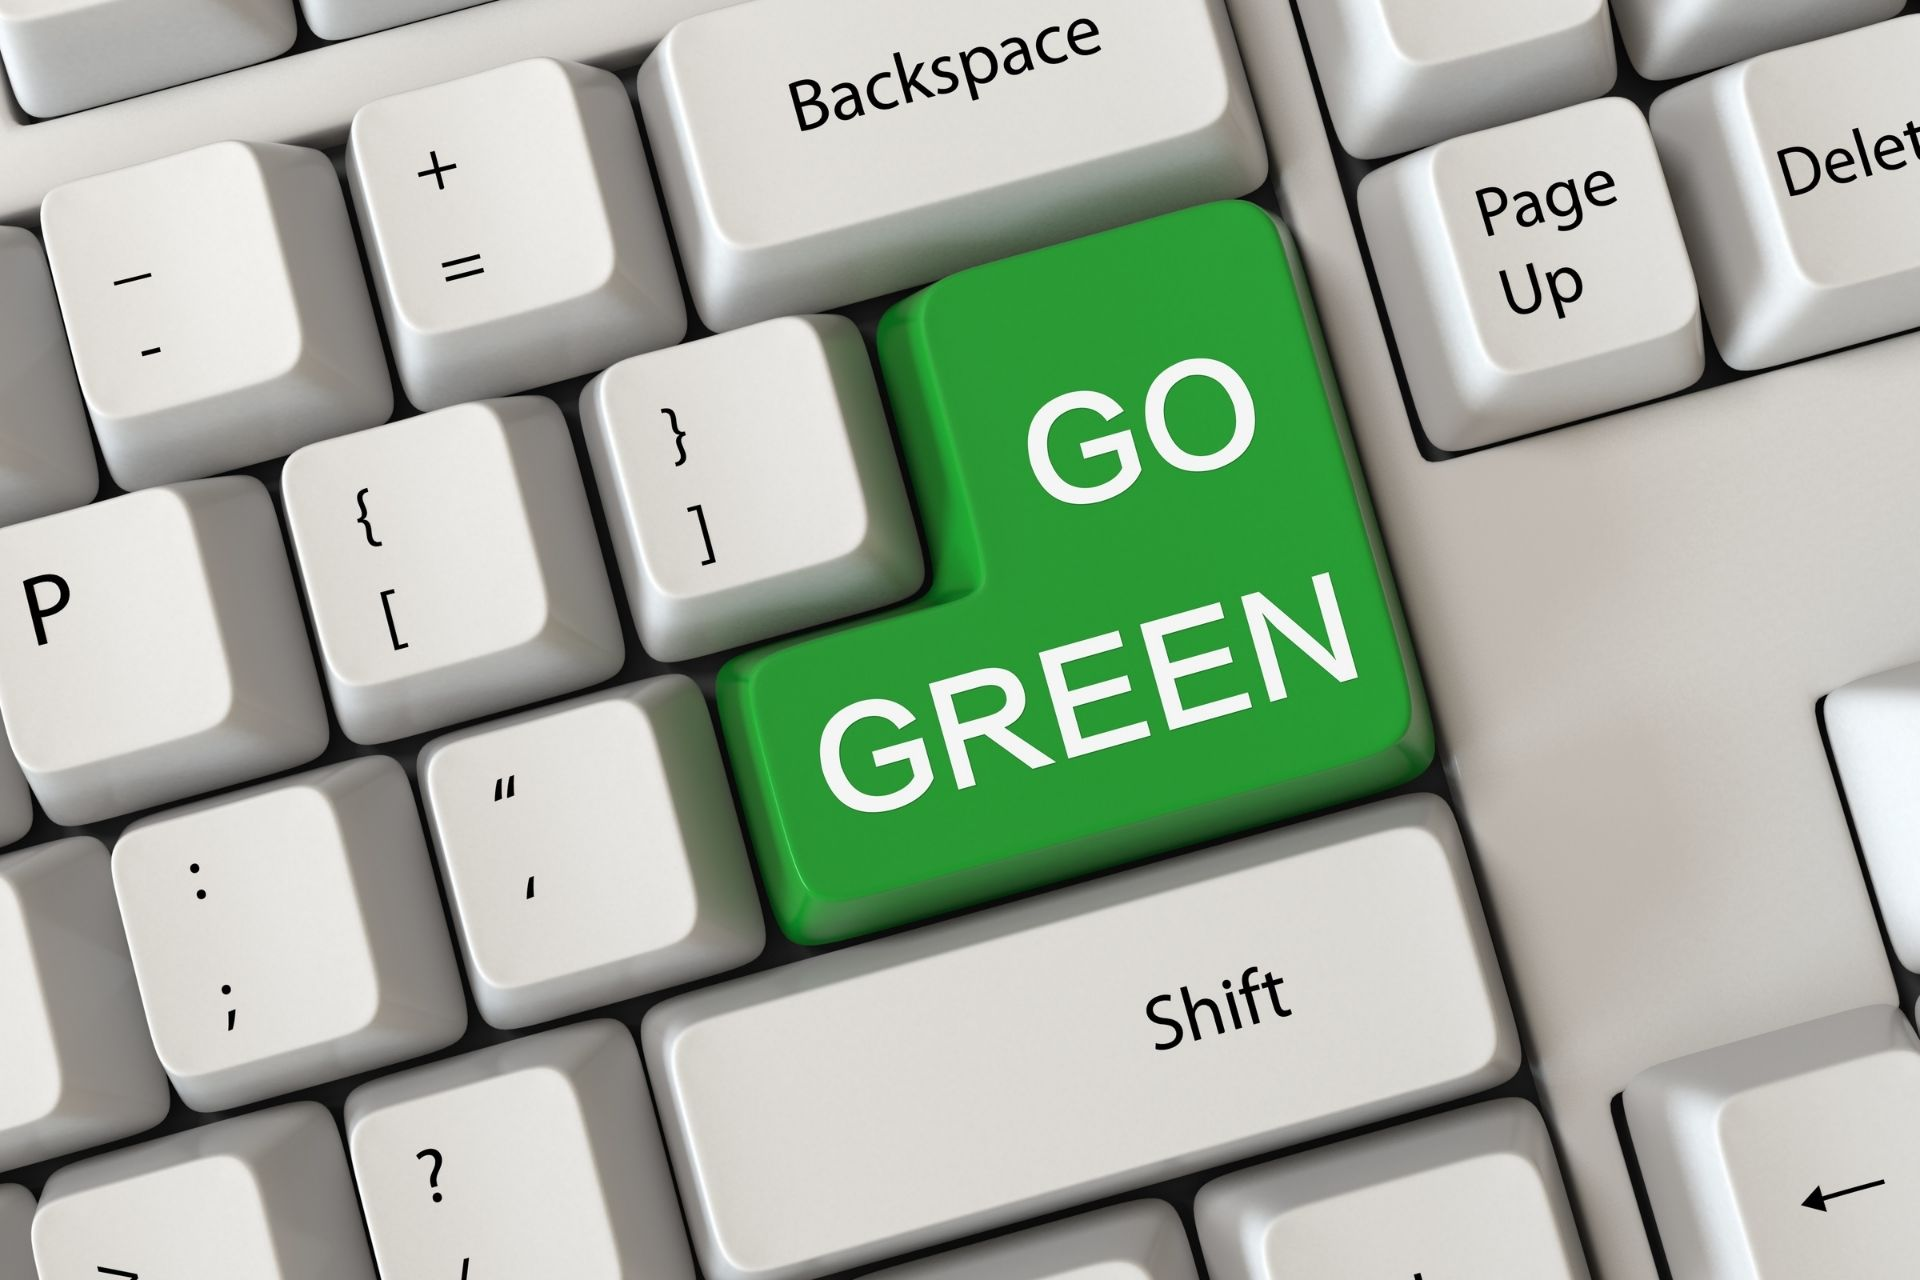 A computer keyboard with GO GREEN instead of Enter key